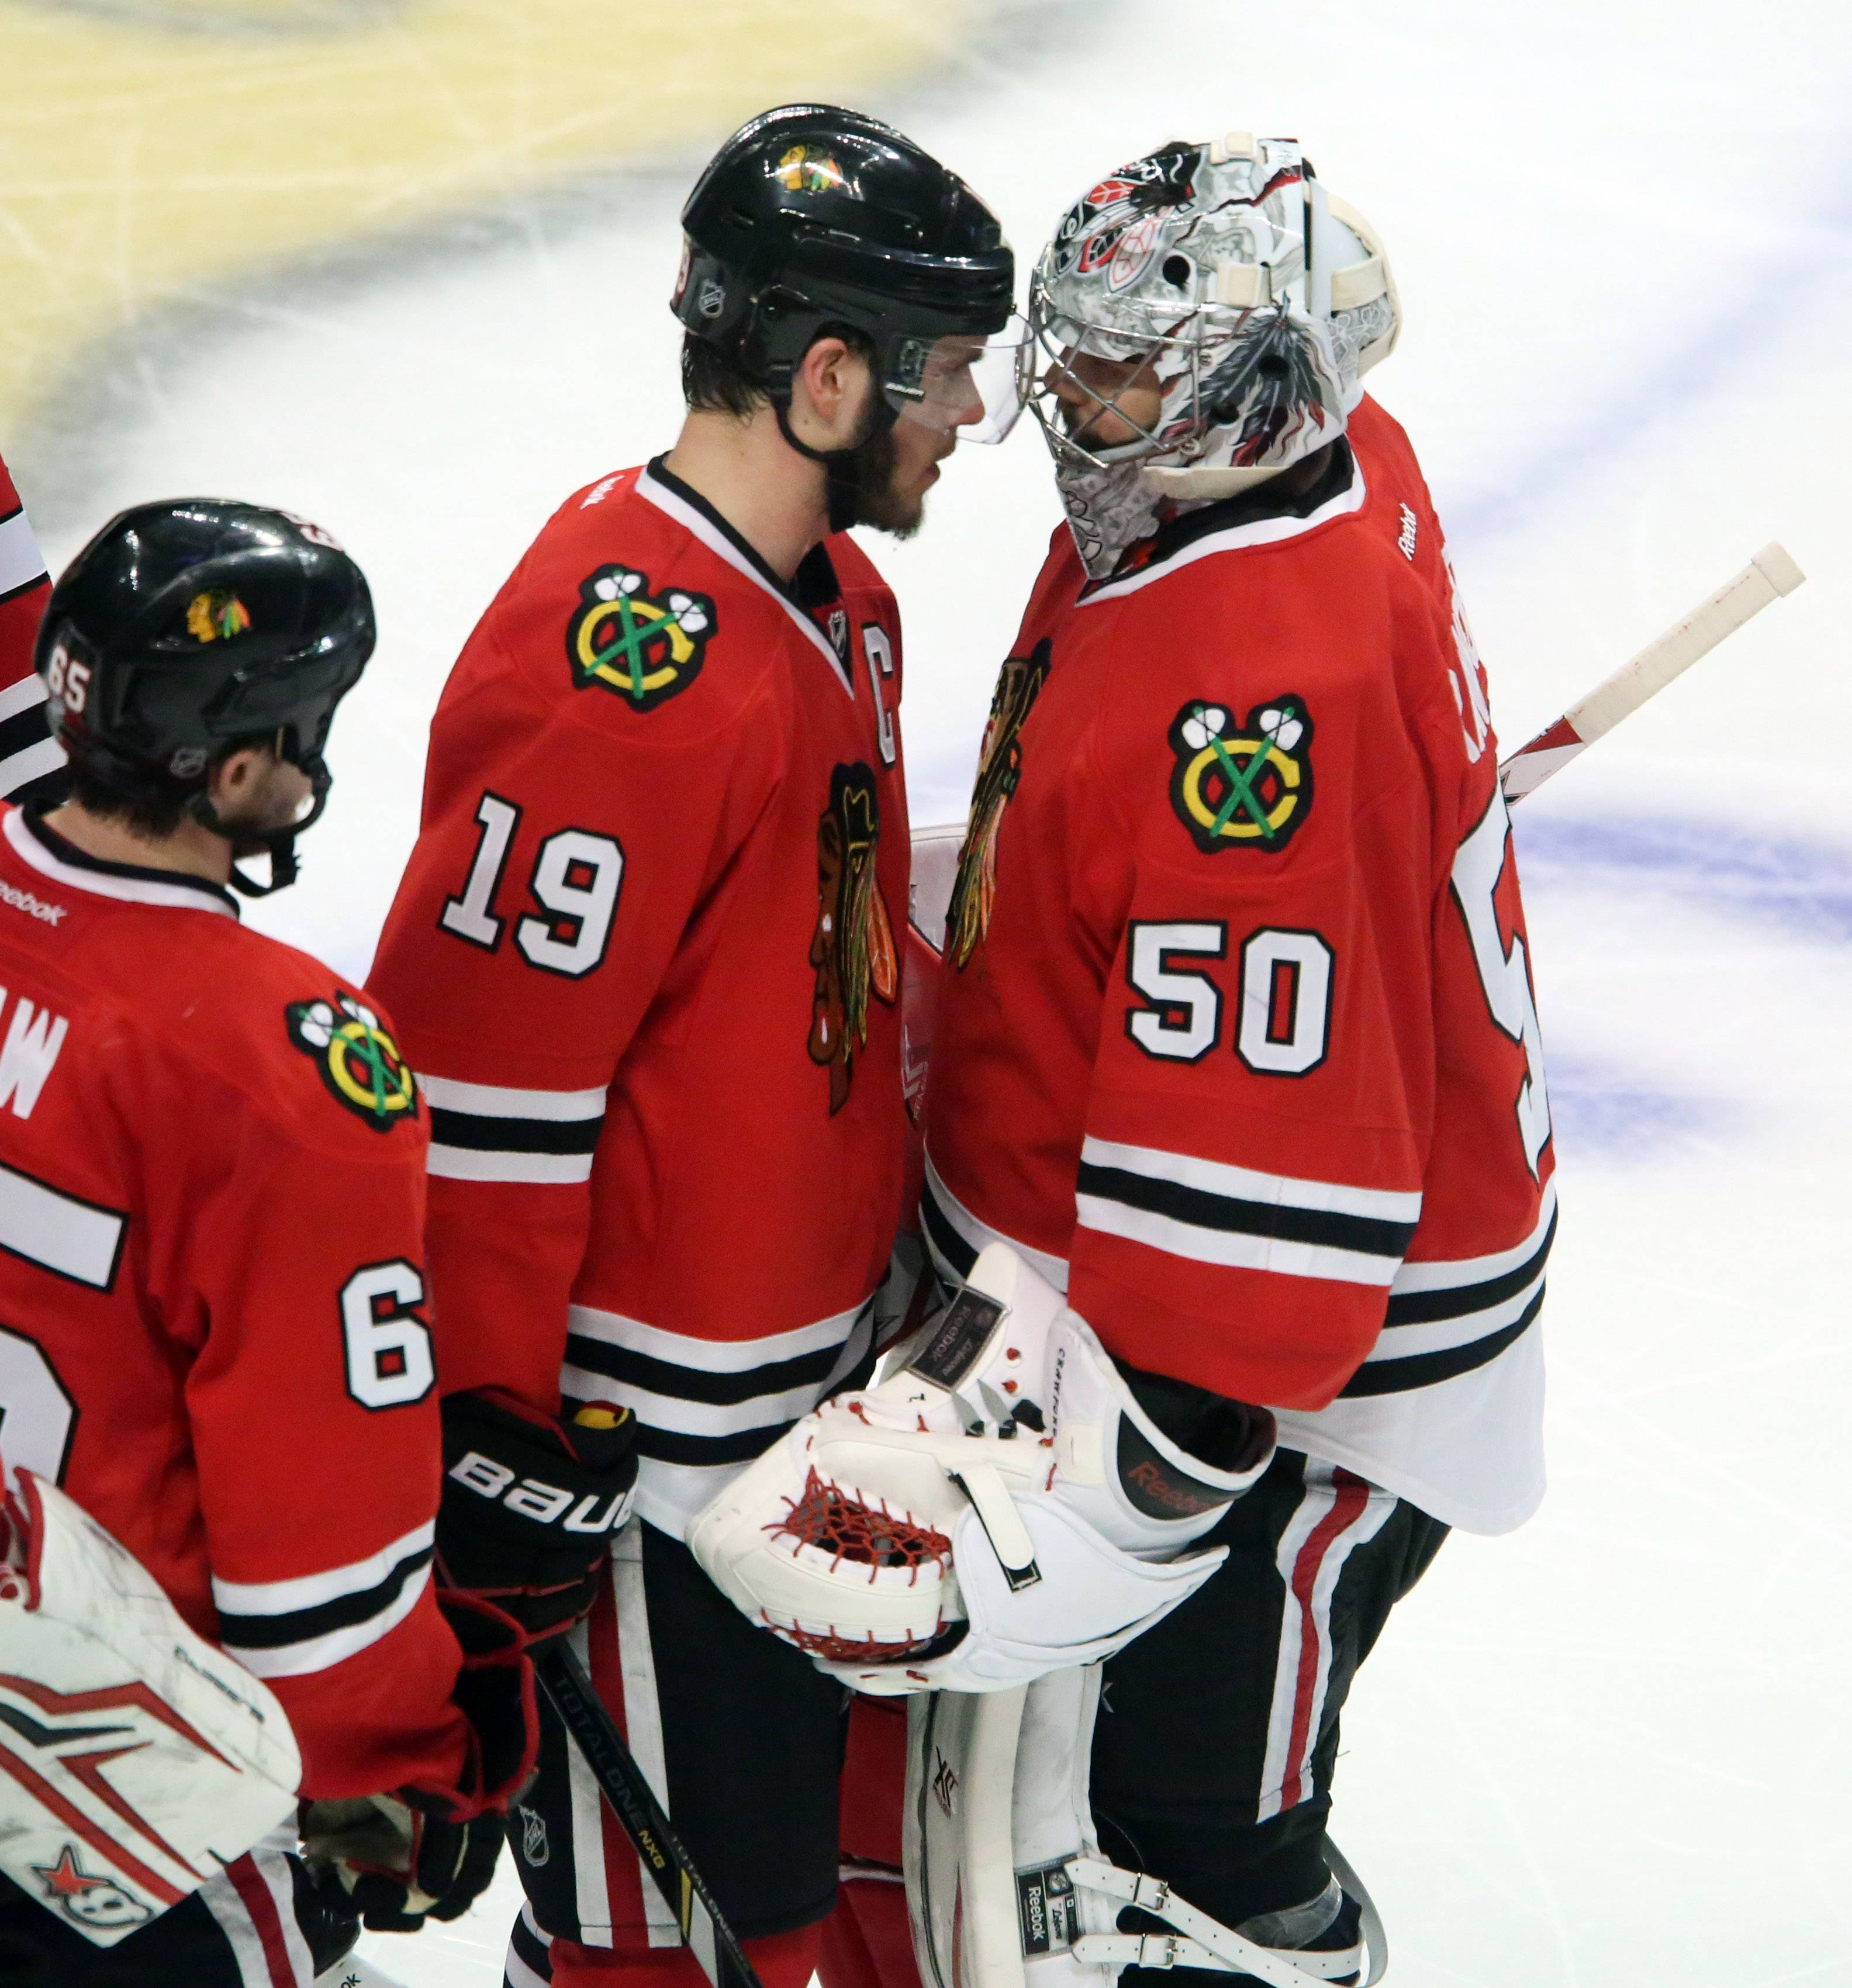 Chicago Blackhawks goalie Corey Crawford gets a hand from Jonathan Toews after letting the winning goal past him in overtime of Game 7 as the Los Angeles Kings win the Western Conference final 5-4.